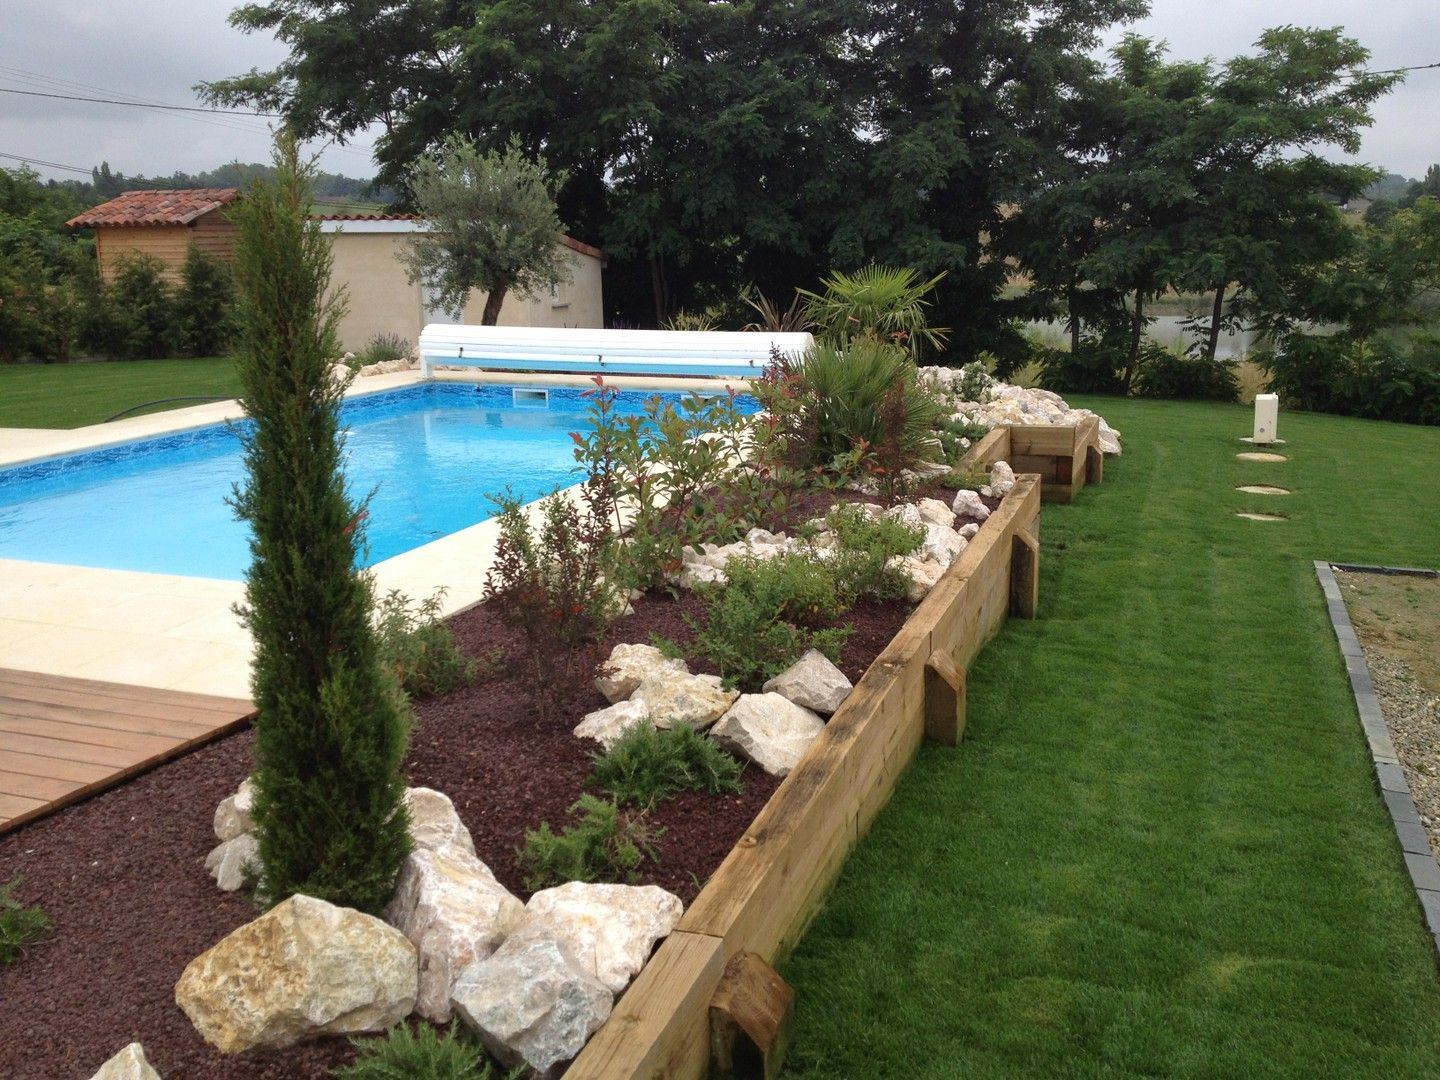 Am nagement tour de piscine pools pinterest swimming for Amenagement exterieur piscine